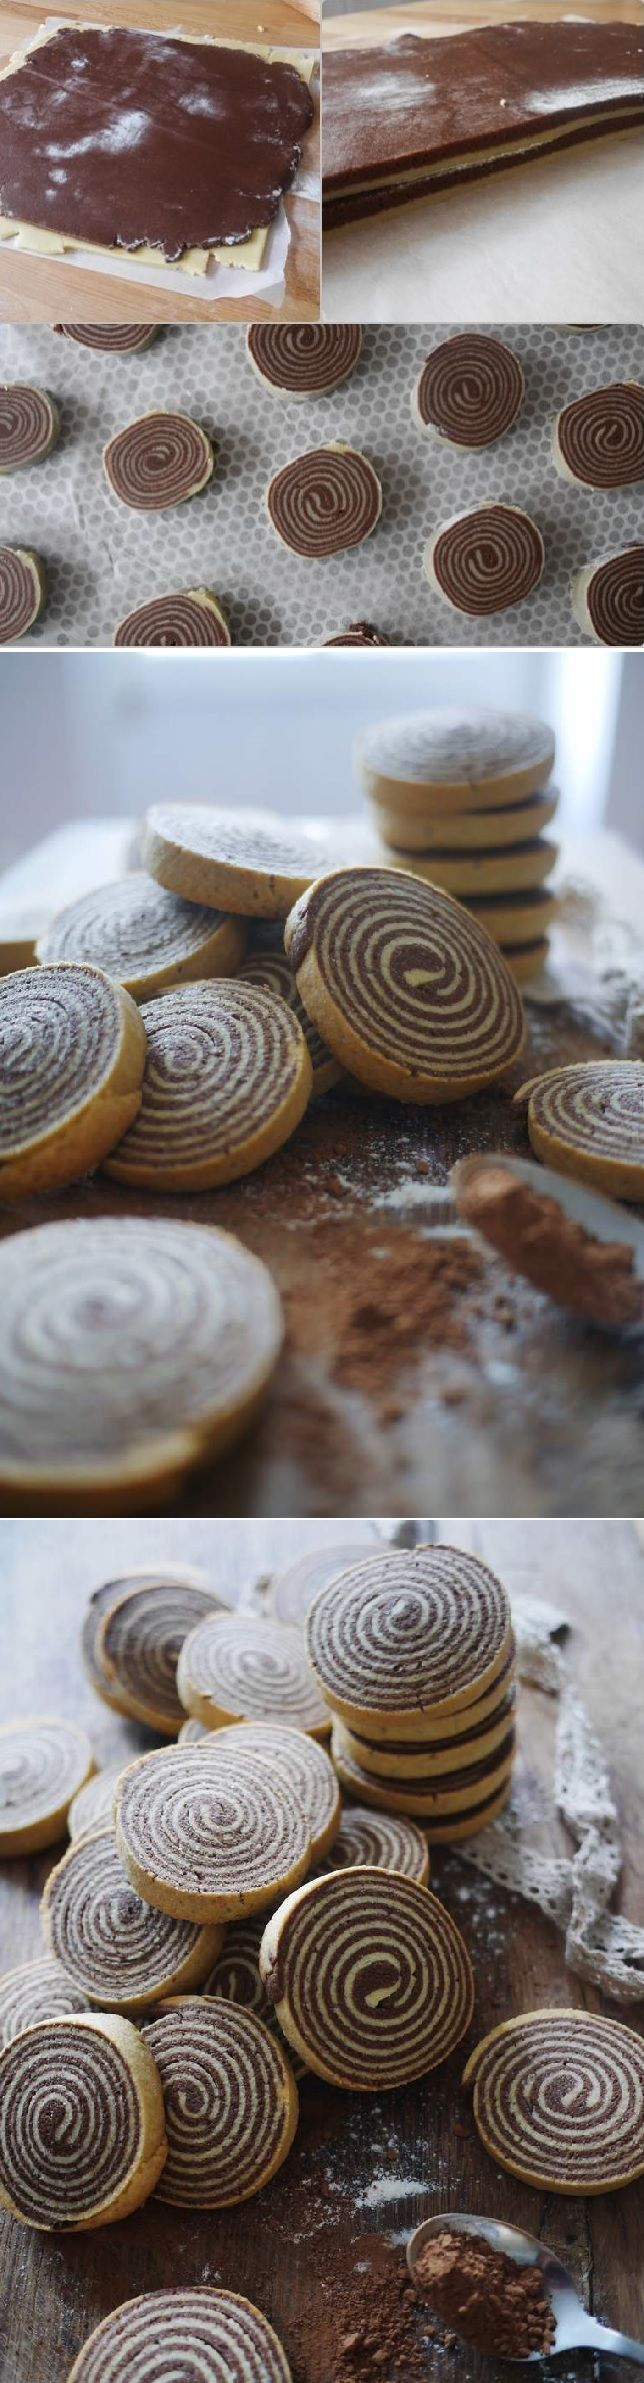 Chocolate and vanilla shortbread spiral ! The spiral biscuits, it titillated me to try because I find it really too beautiful. I took out my perfect shortbread recipe of my grandmother